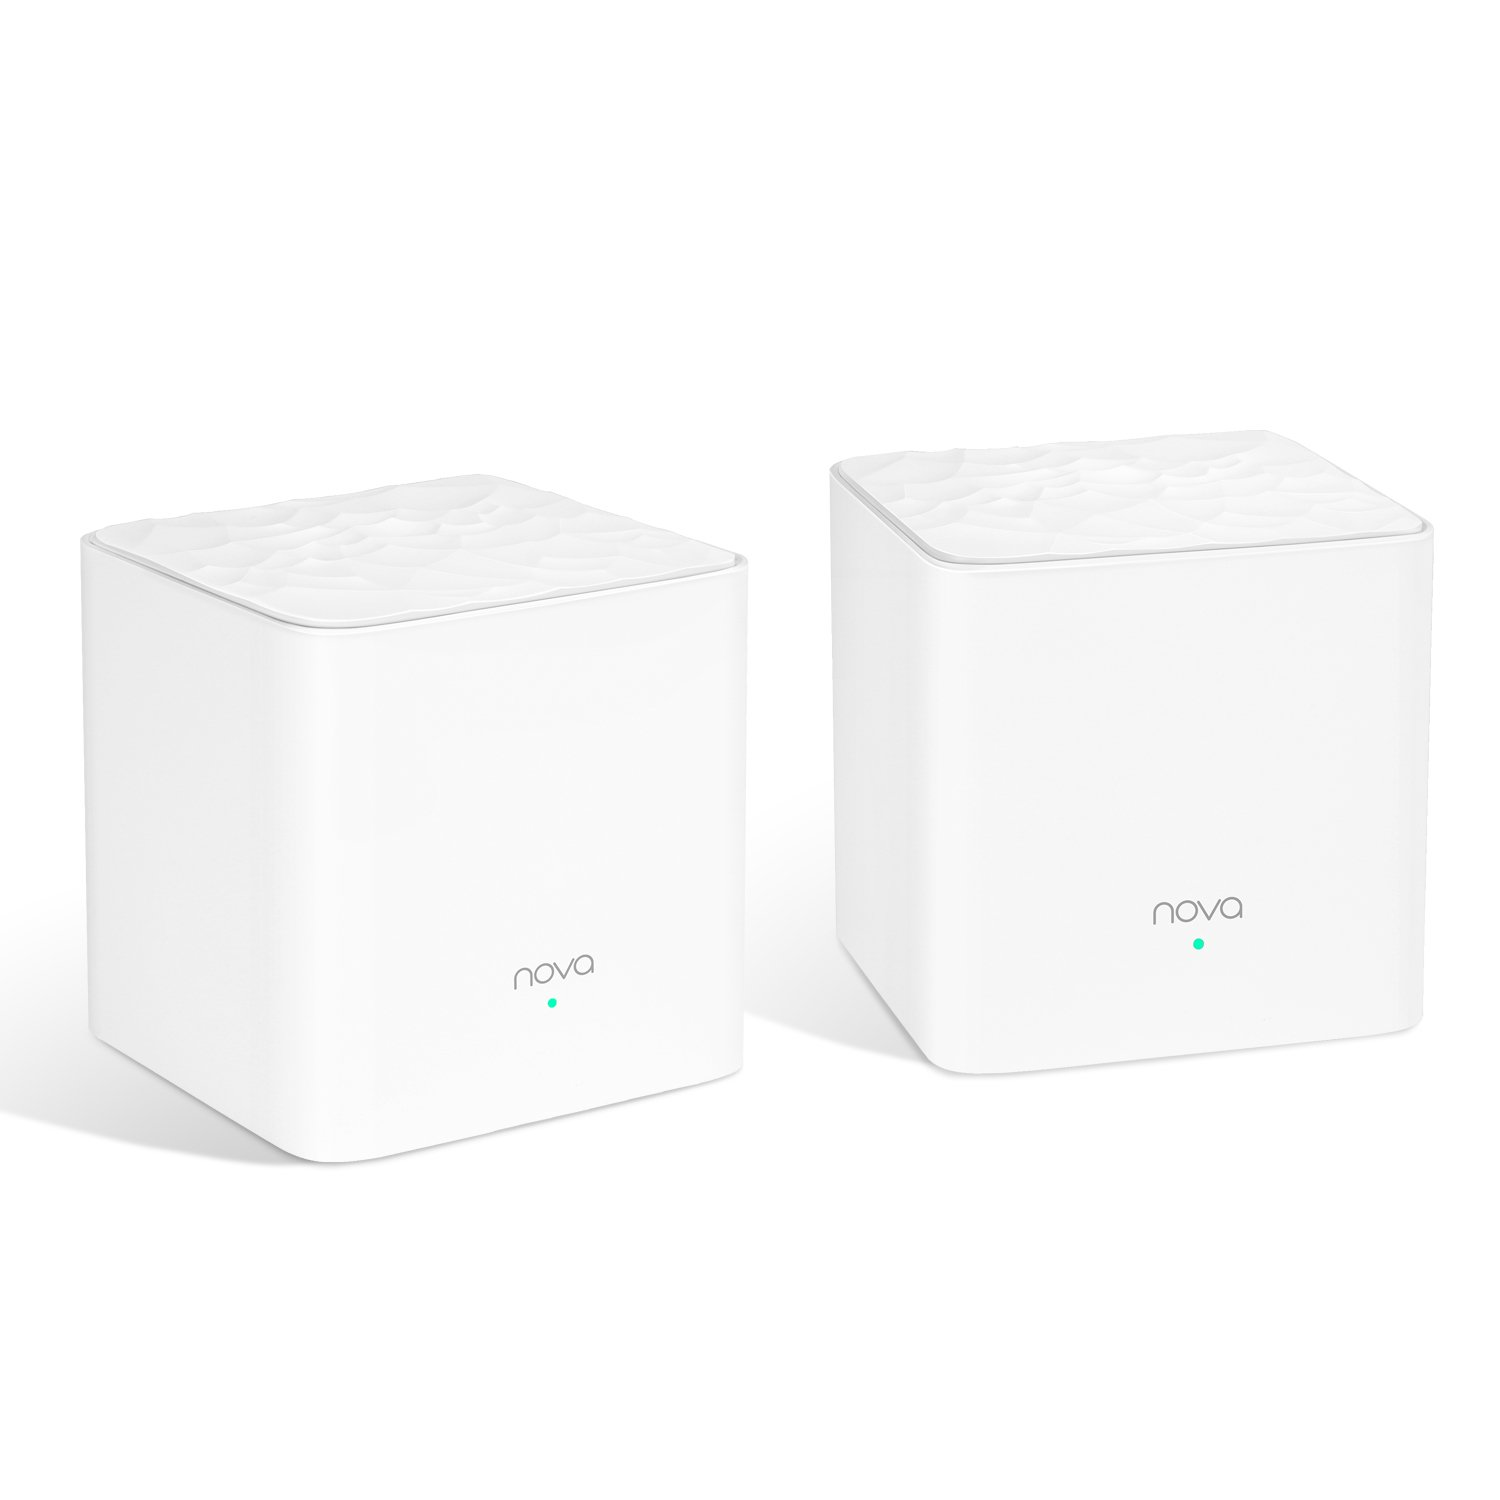 Tenda Nova MW3(2-Pack) Whole Home Mesh WiFi System Coverage up to 3,000 sq. ft, Plug and Play, Works with Alexa,Parental Controls, Router Replacement.